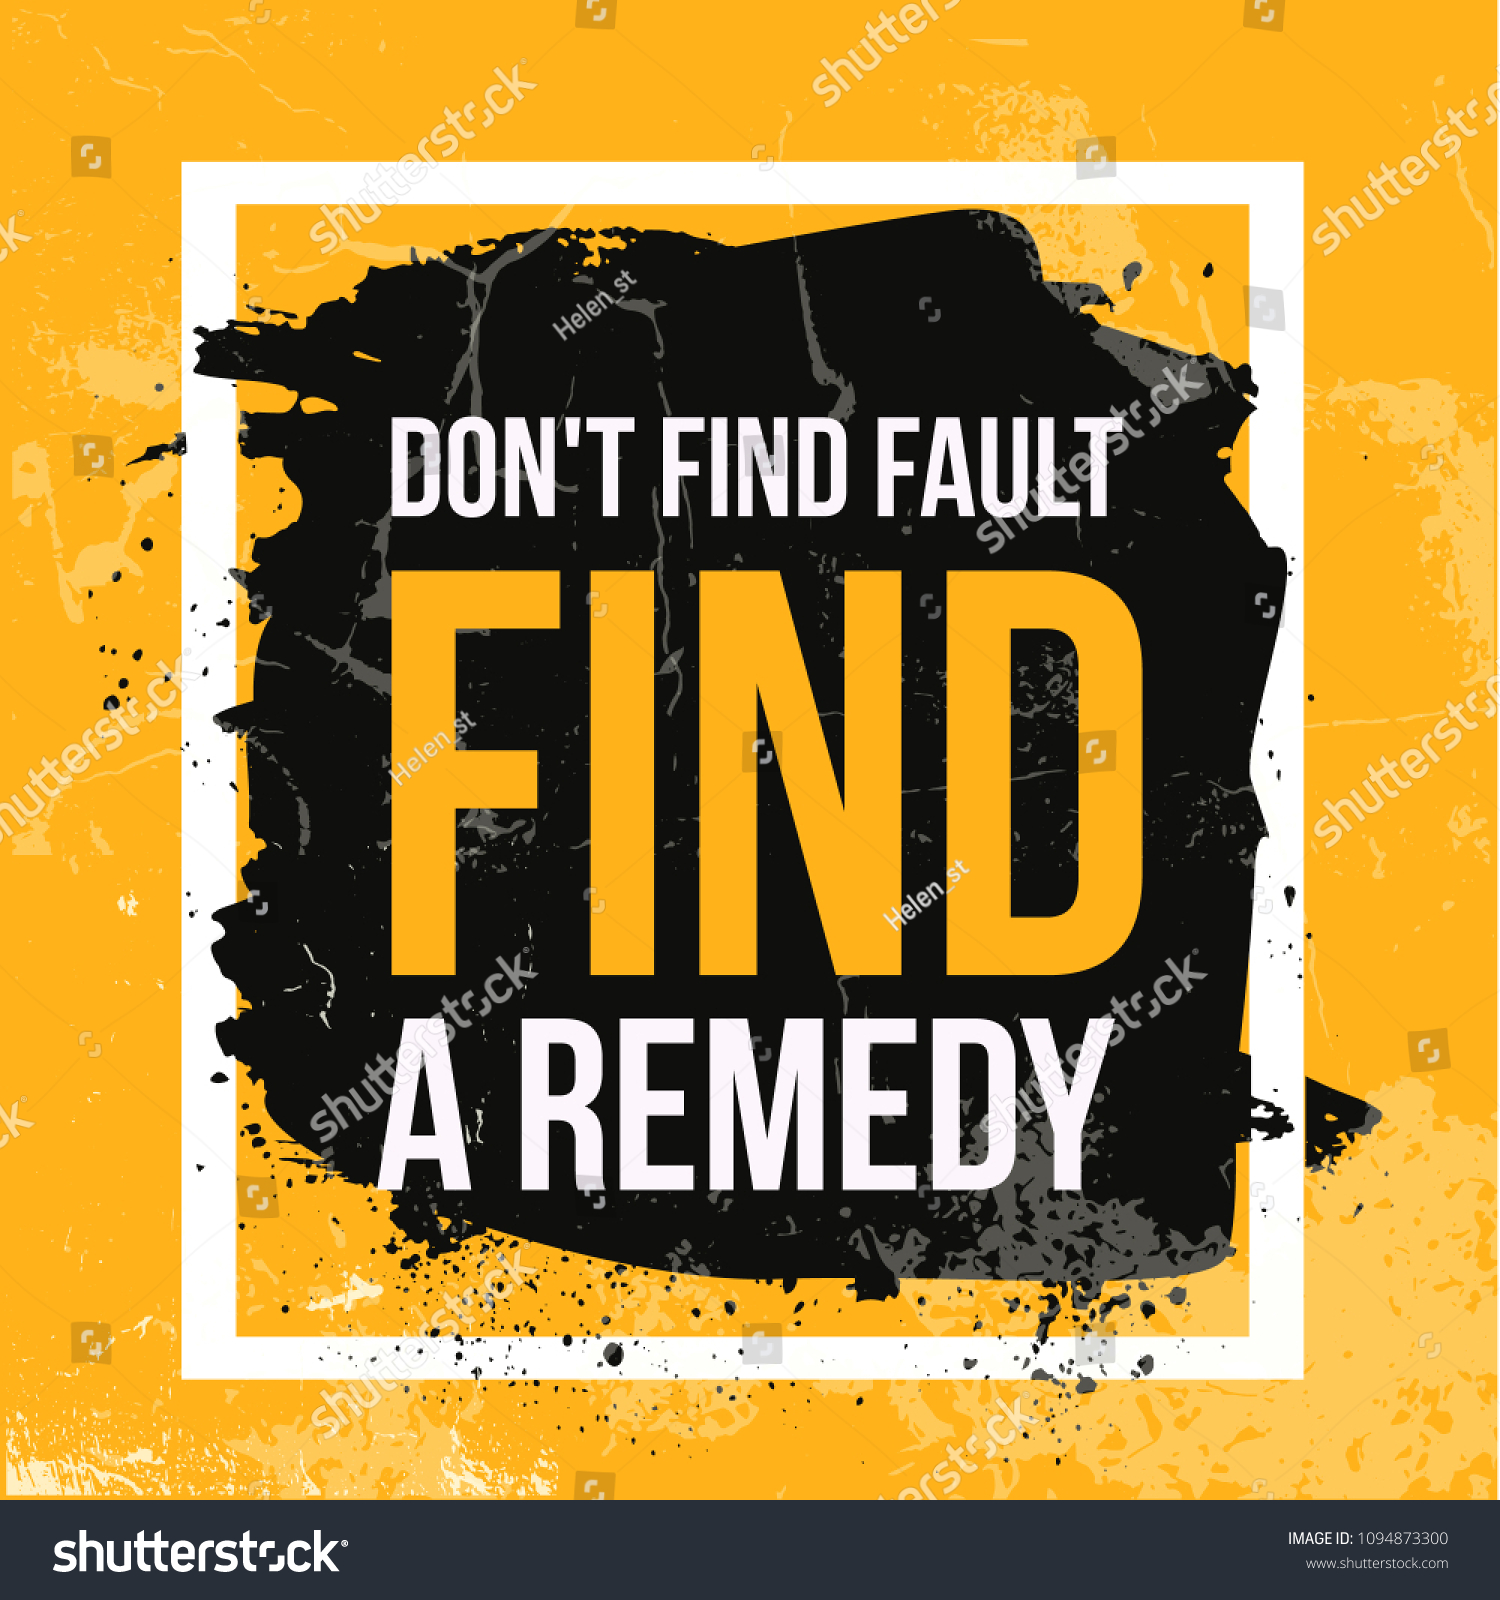 Focus On Remedies Not Faults Vector Stock Vector 1094873300 ...